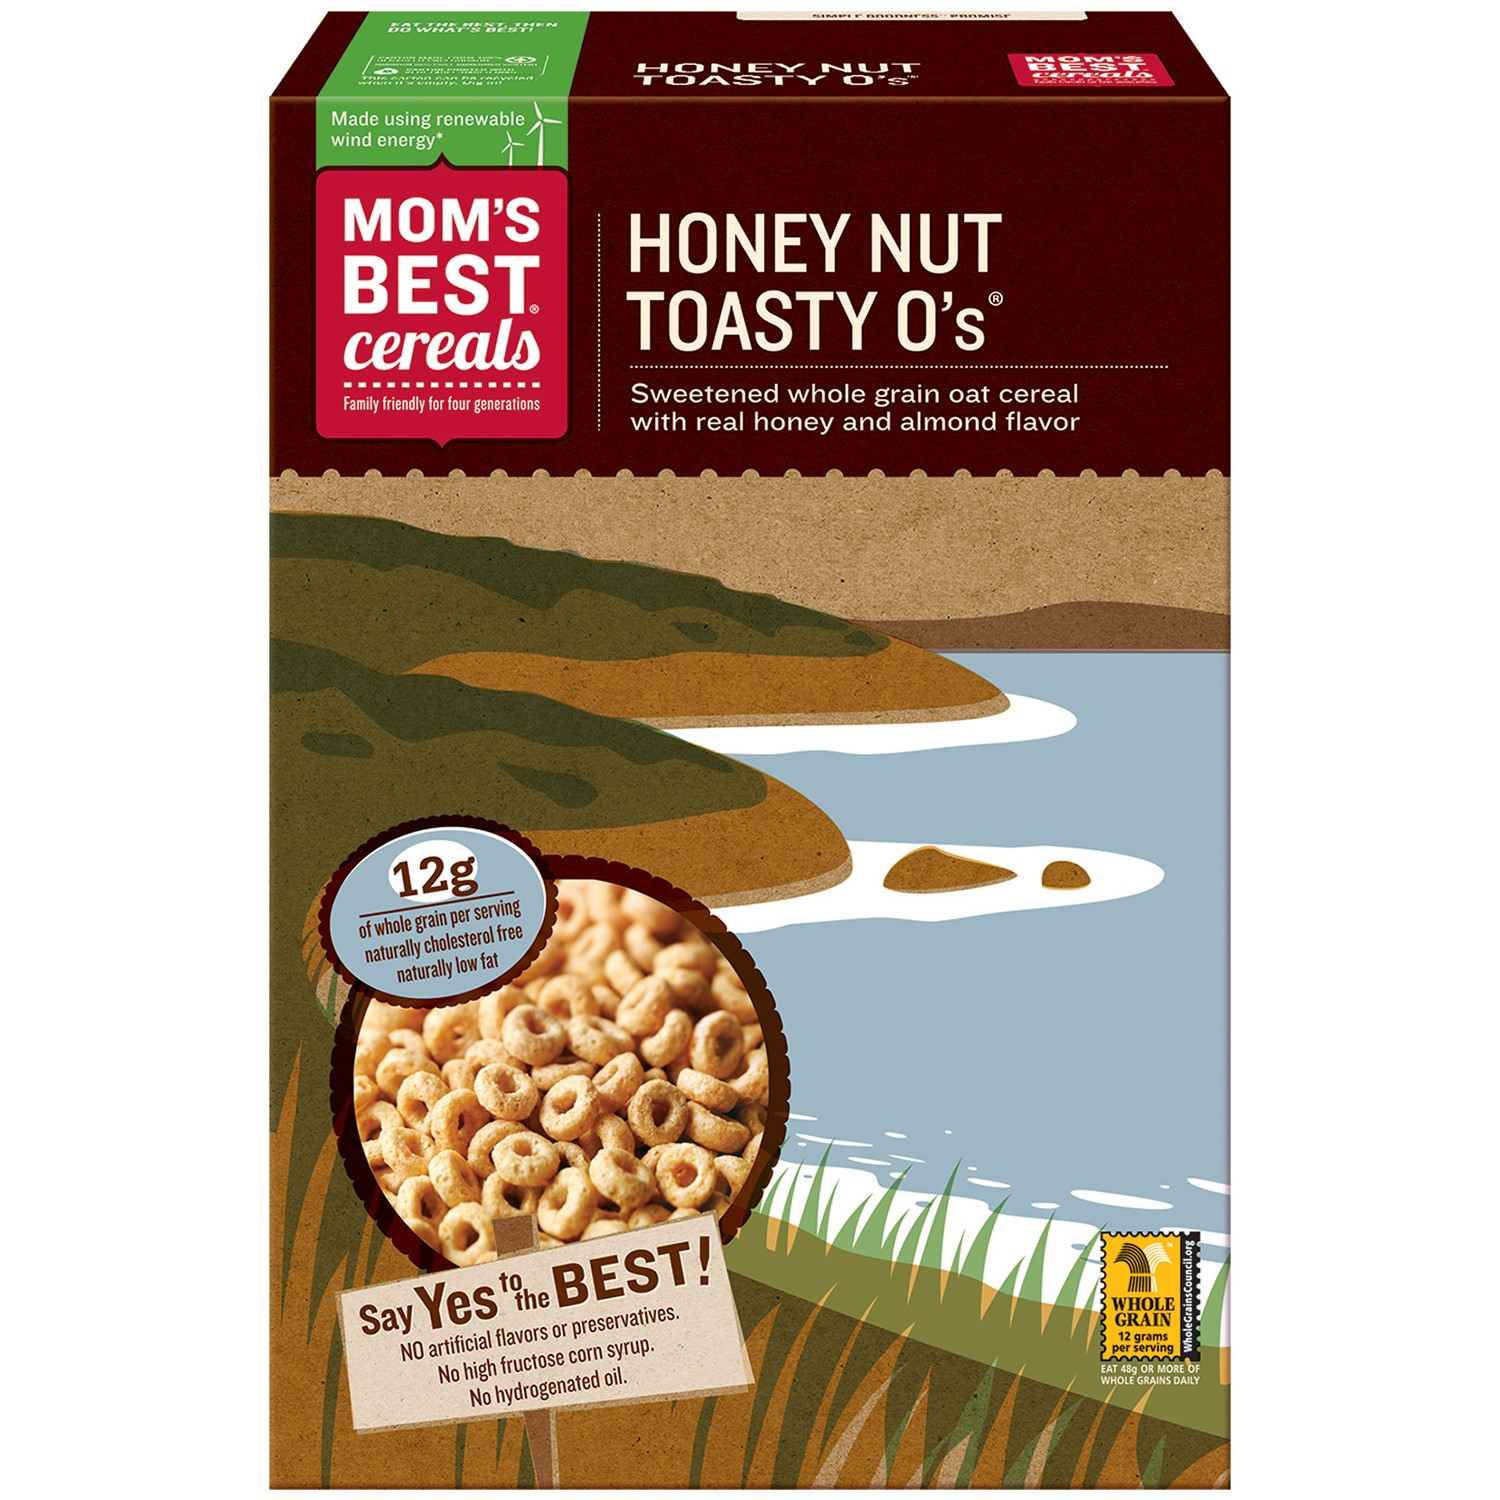 Mom's Best Naturals Honey Nuttoasty Os - Case Of 10 - 20 Oz.